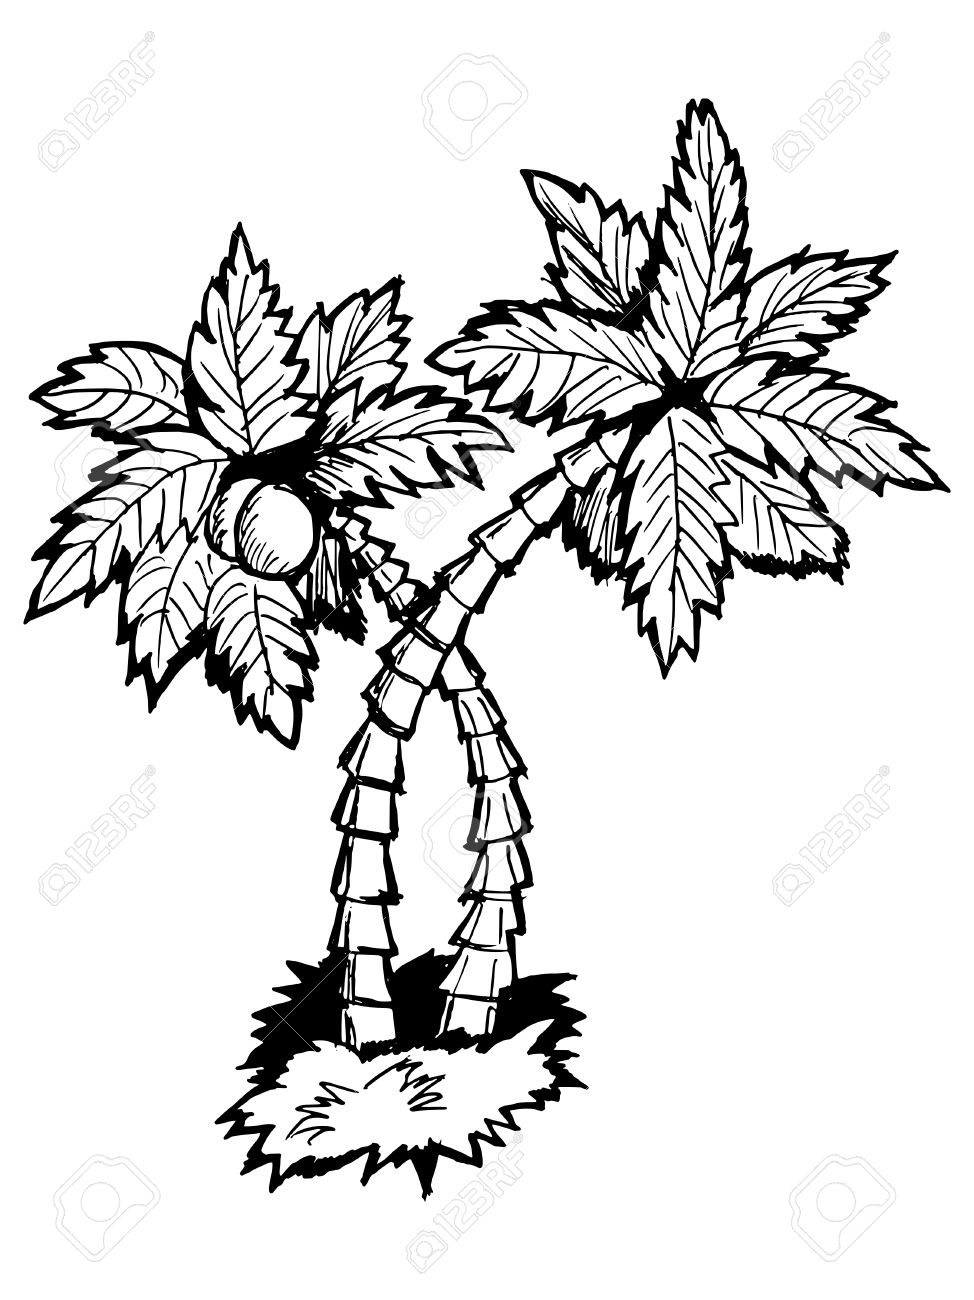 974x1300 Palm Tree Cartoon Drawing Hand Drawn, Vector, Cartoon Illustration